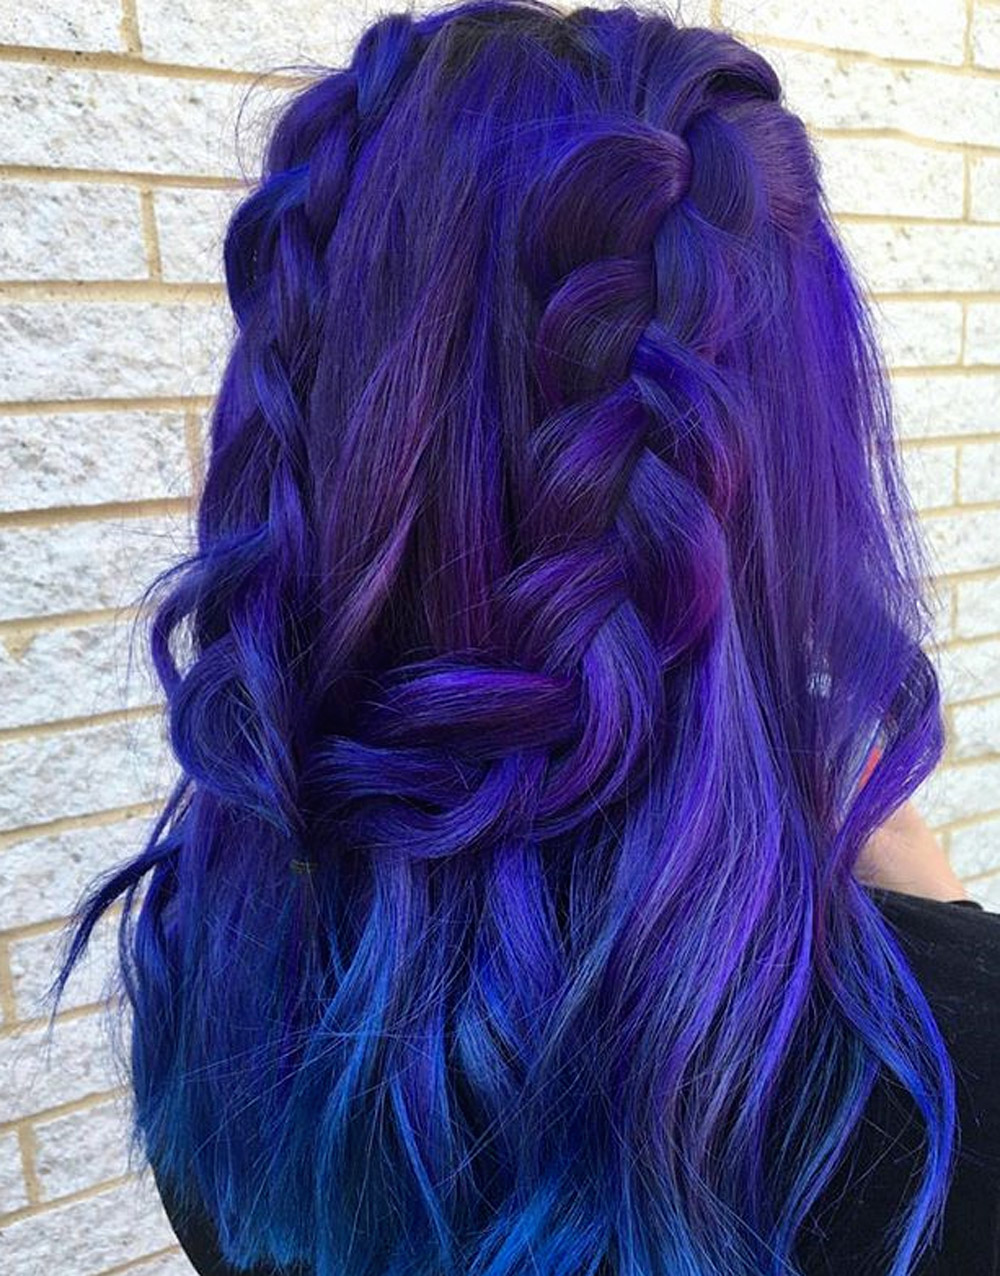 Ultra Violet feathered hair with braid